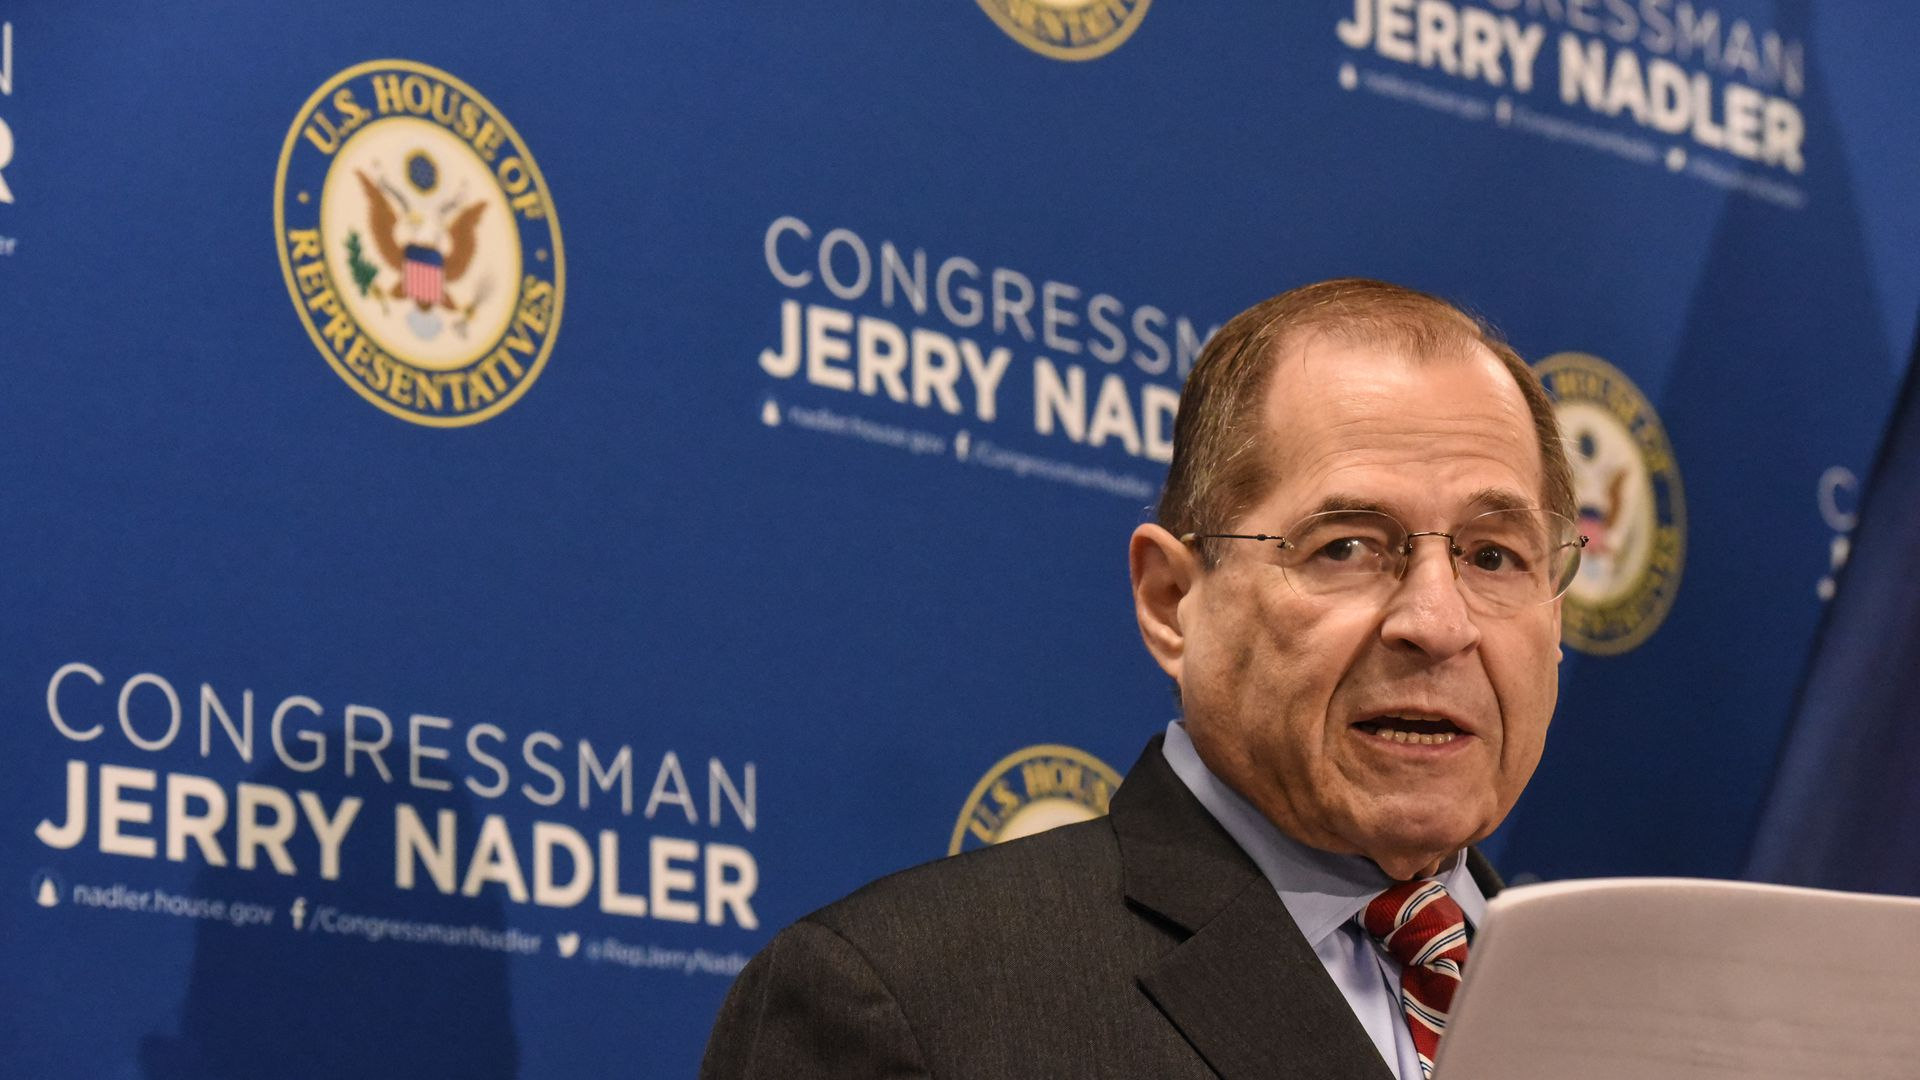 House Judiciary Committee Chairman Jerrold Nadler gives a speech.